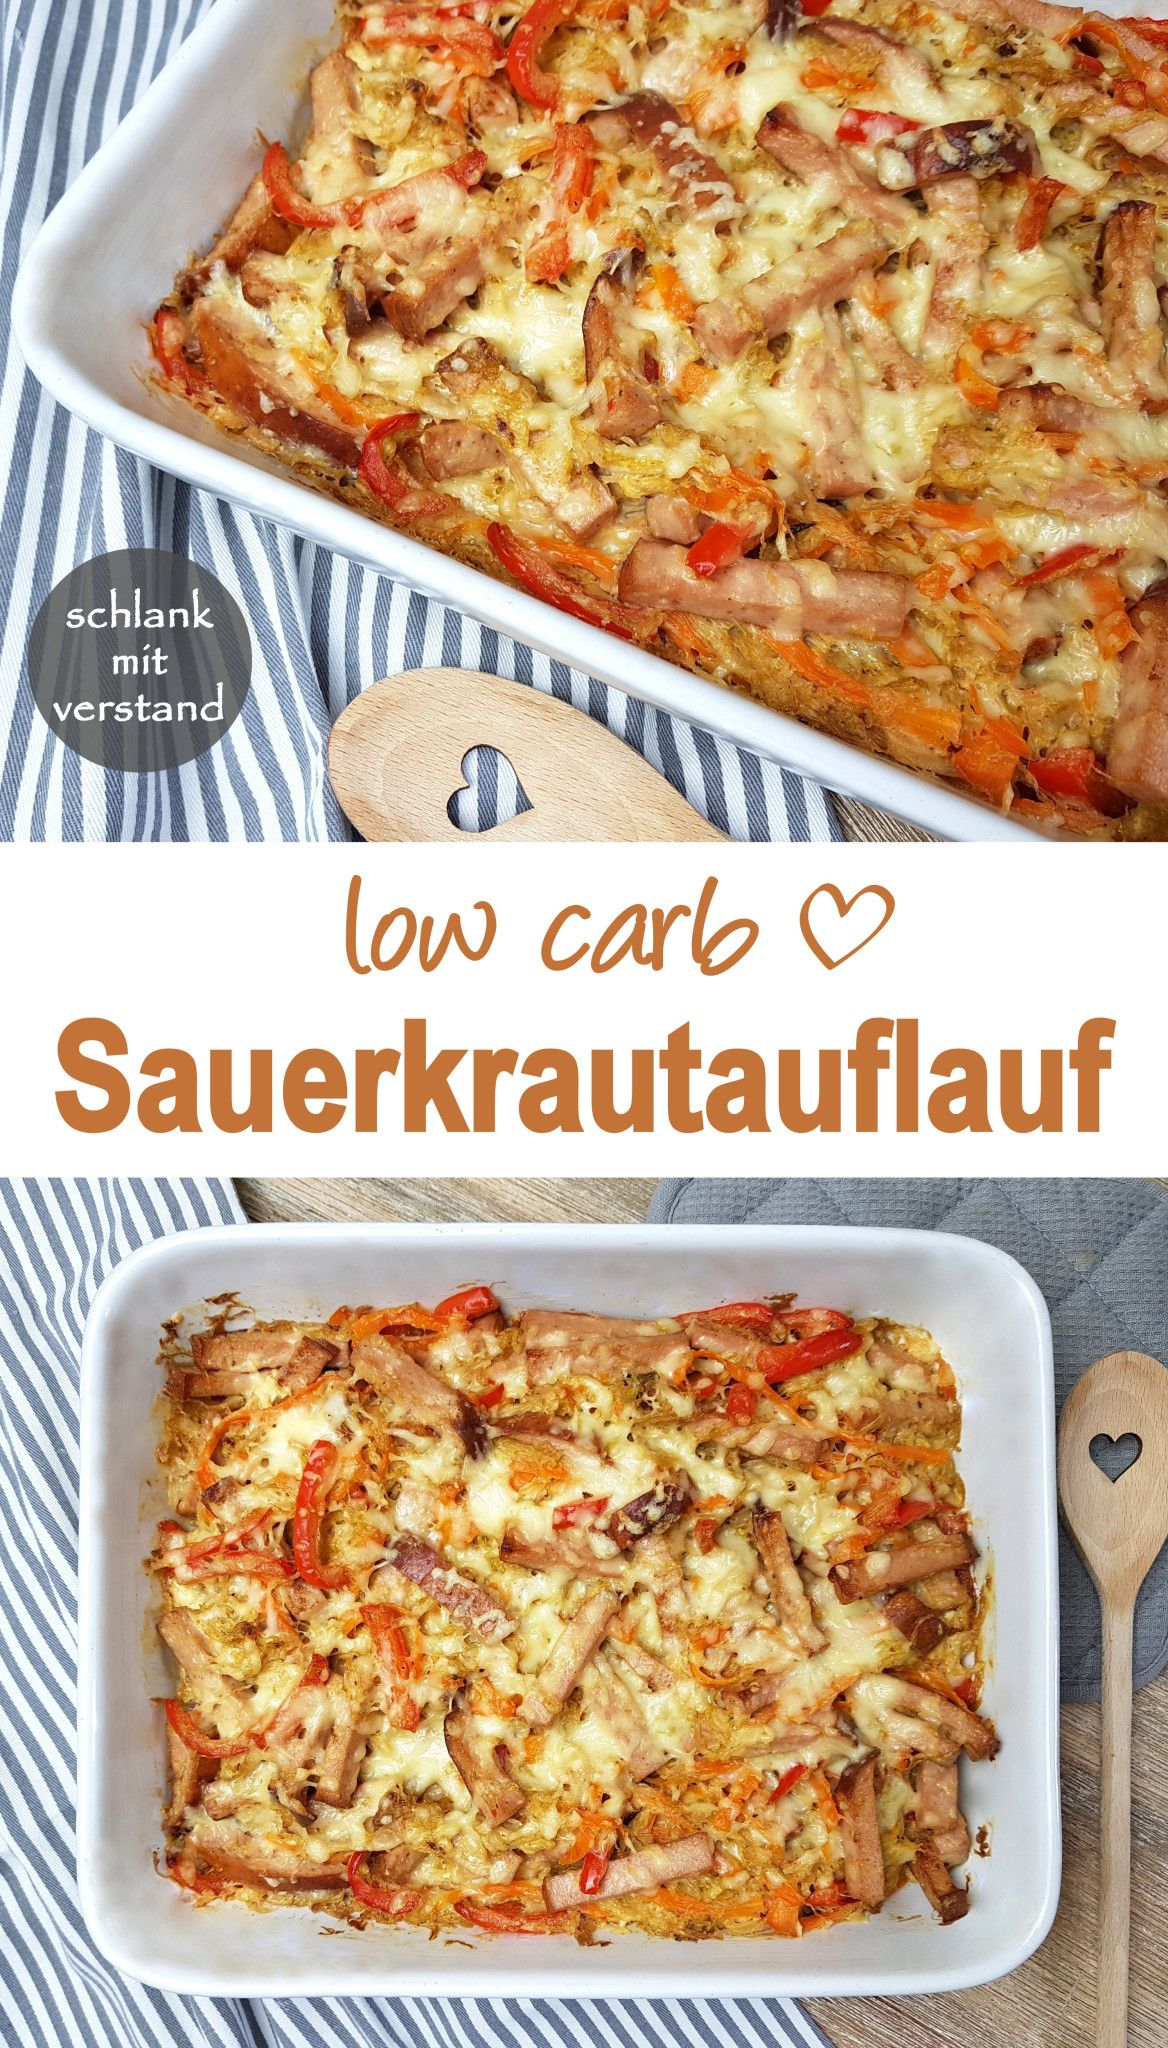 Sauerkrautauflauf low carb